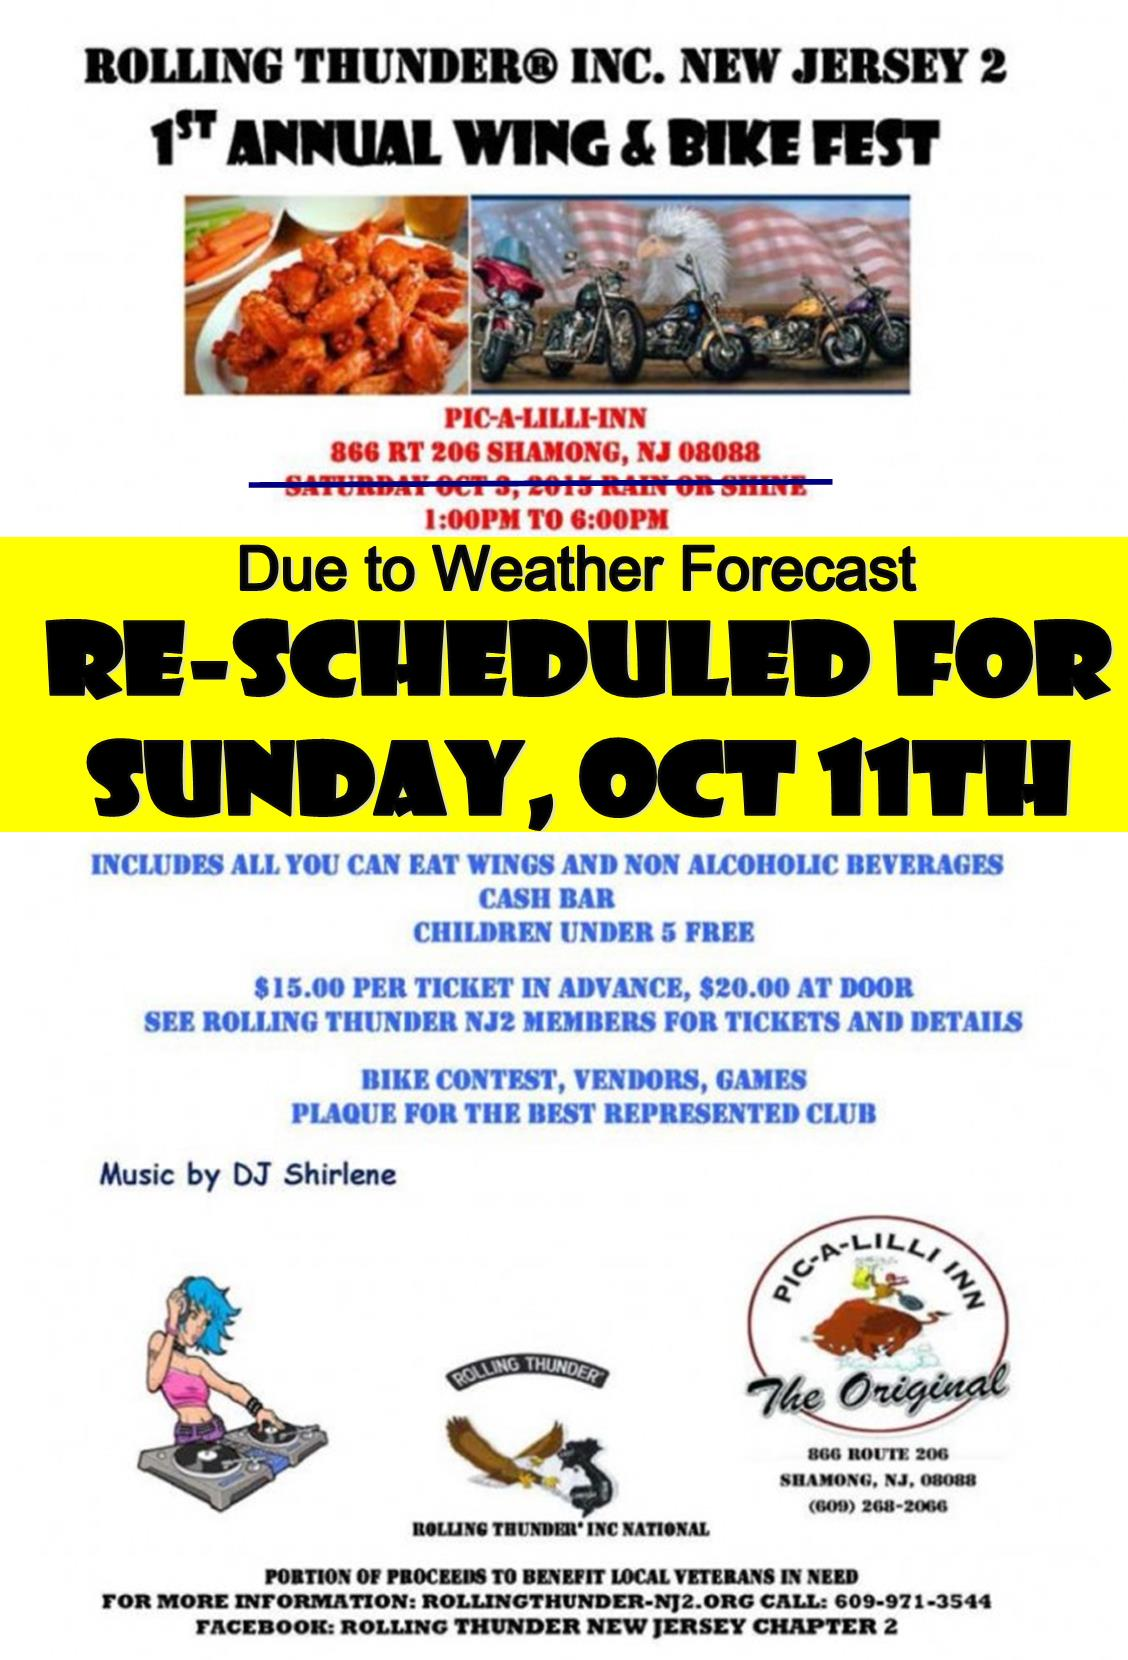 Rolling Thunder New Jersey2 1st annual wing and bike fest